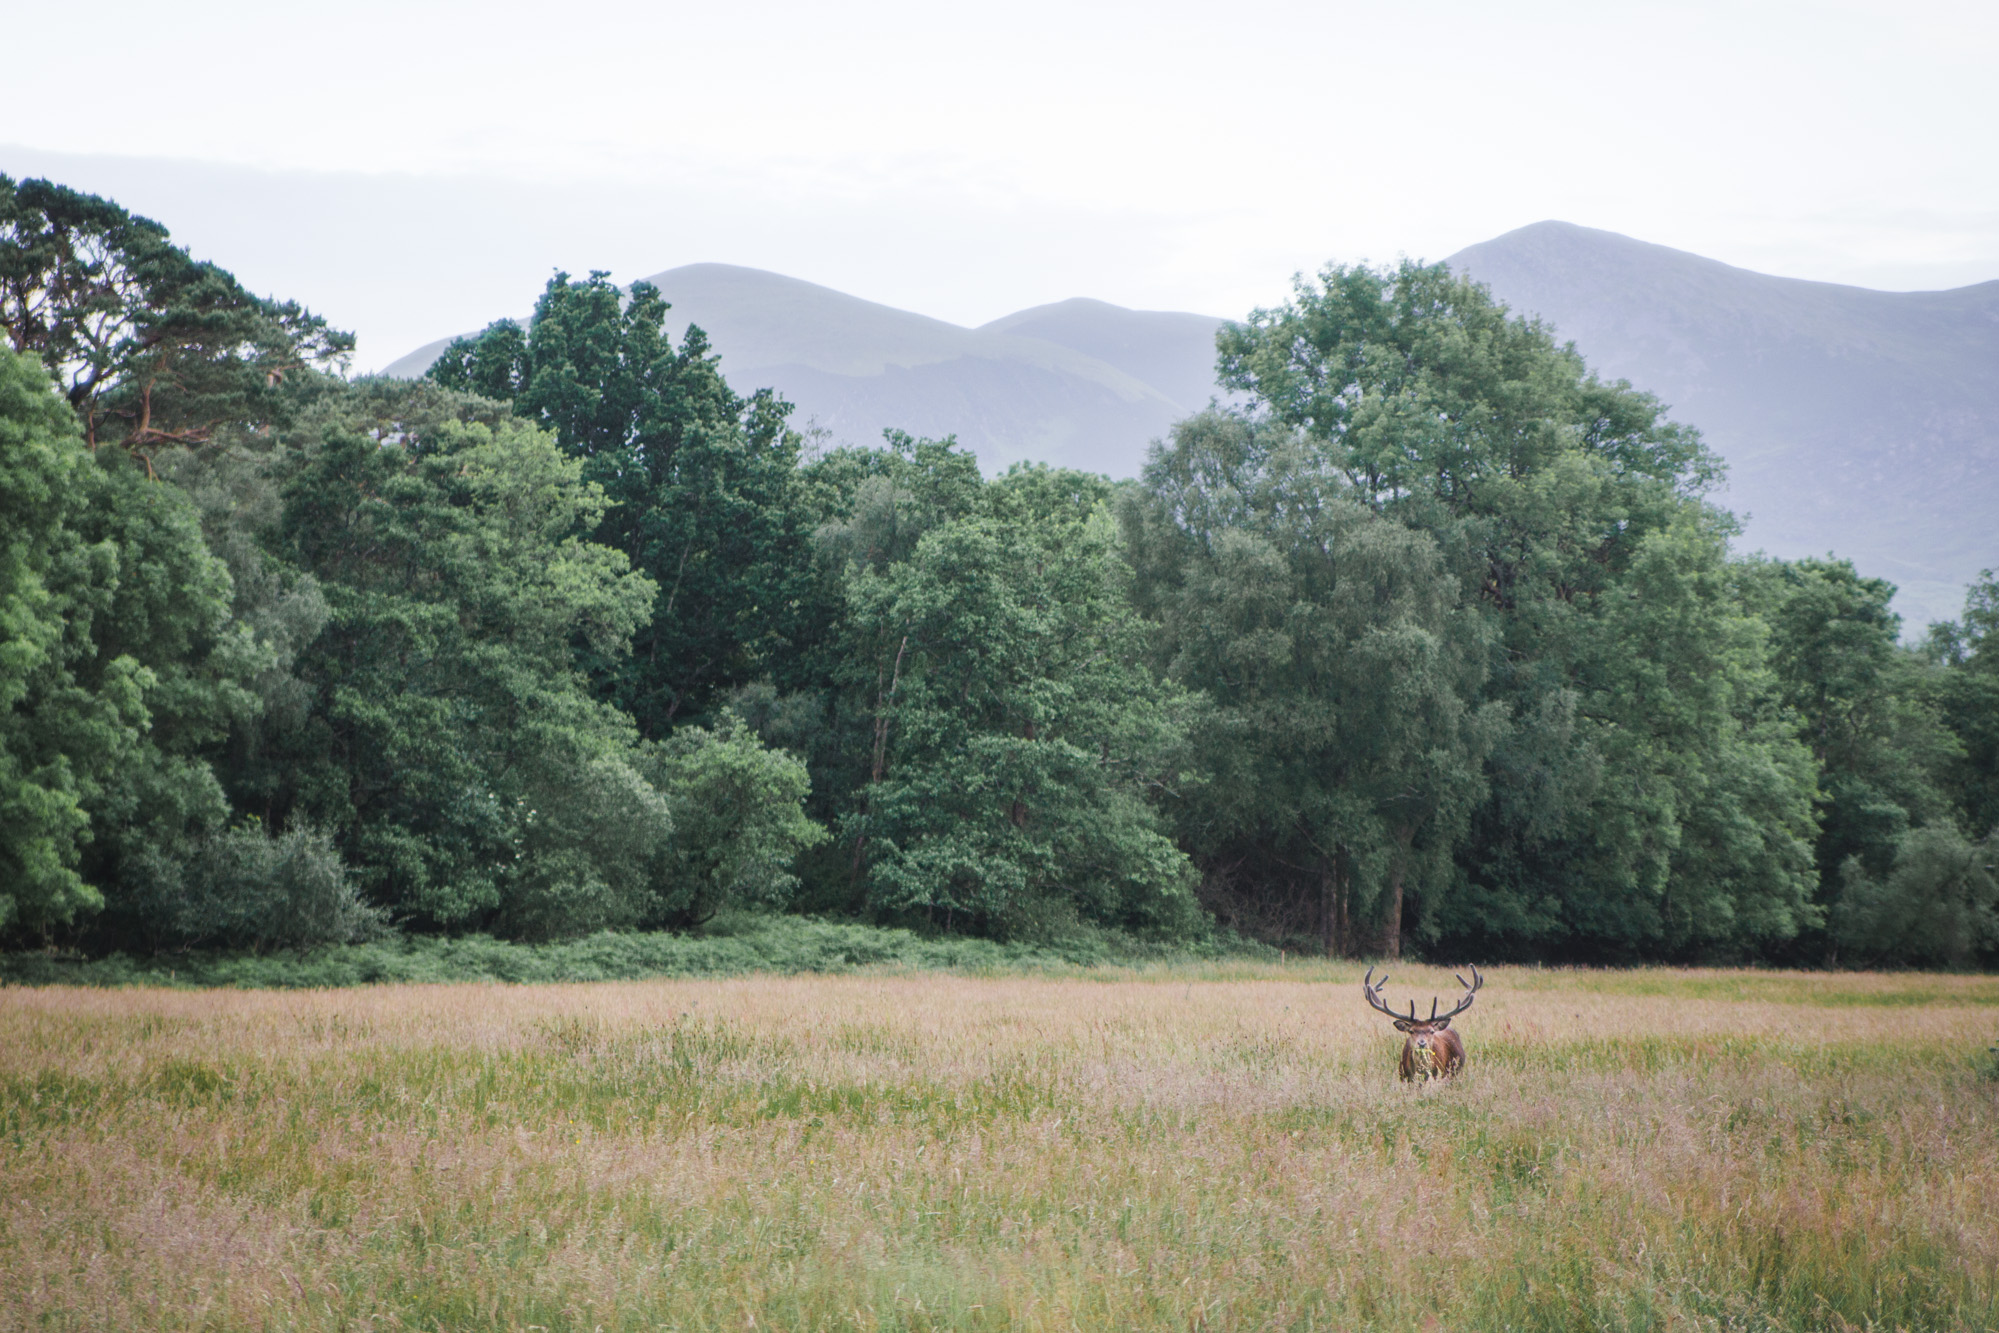 Buck (male deer with antlers) in a field surrounded by trees and mountains in Killarney National Park in Ireland